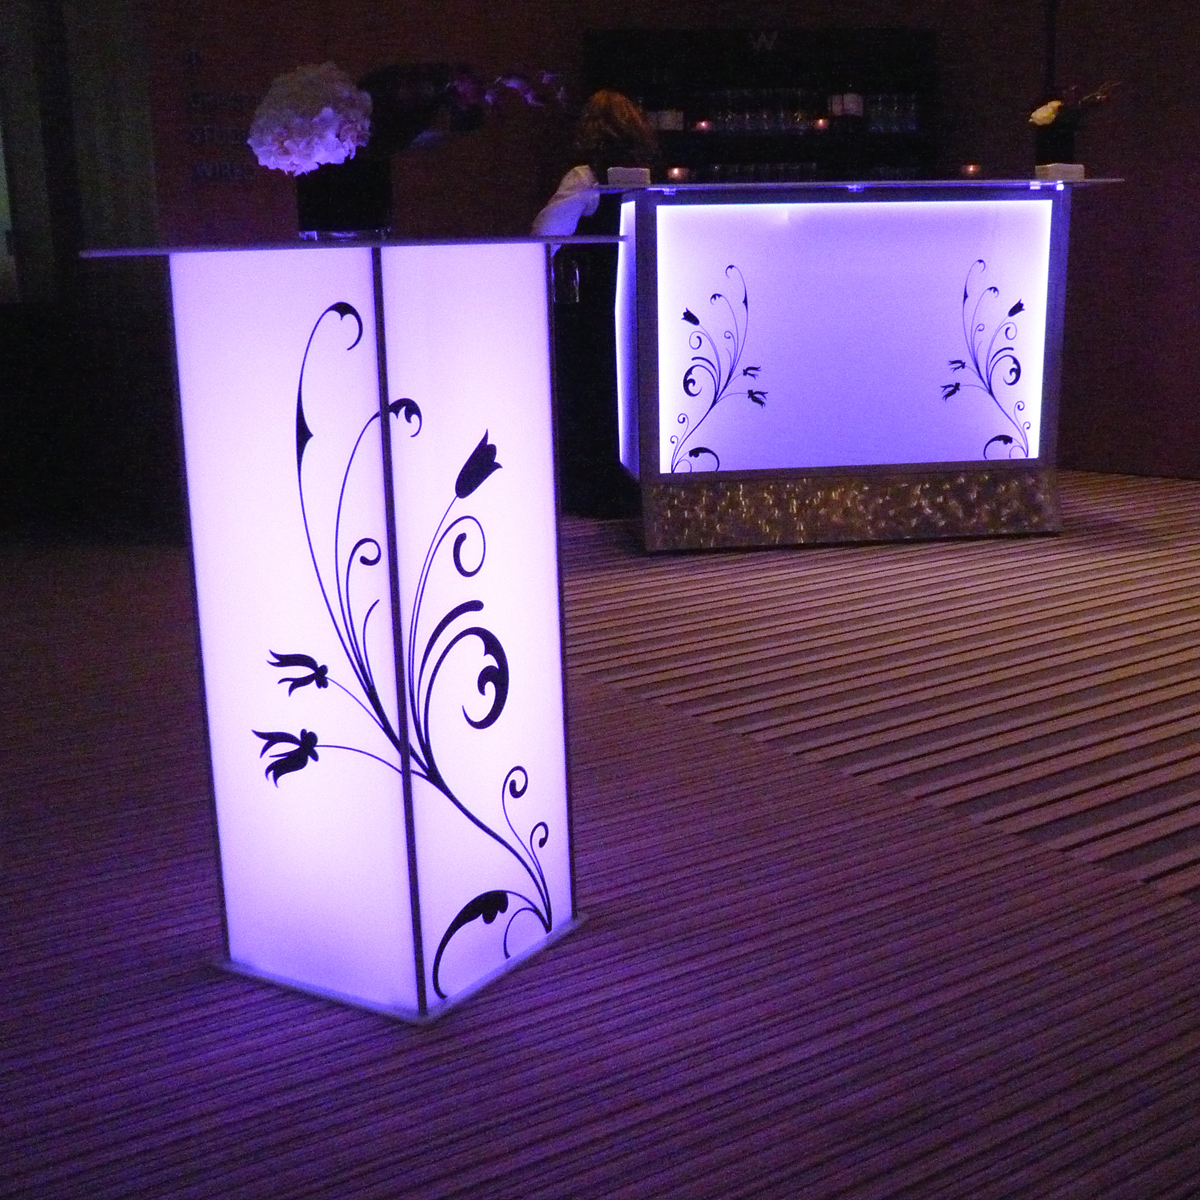 Light Up Bar & Decals